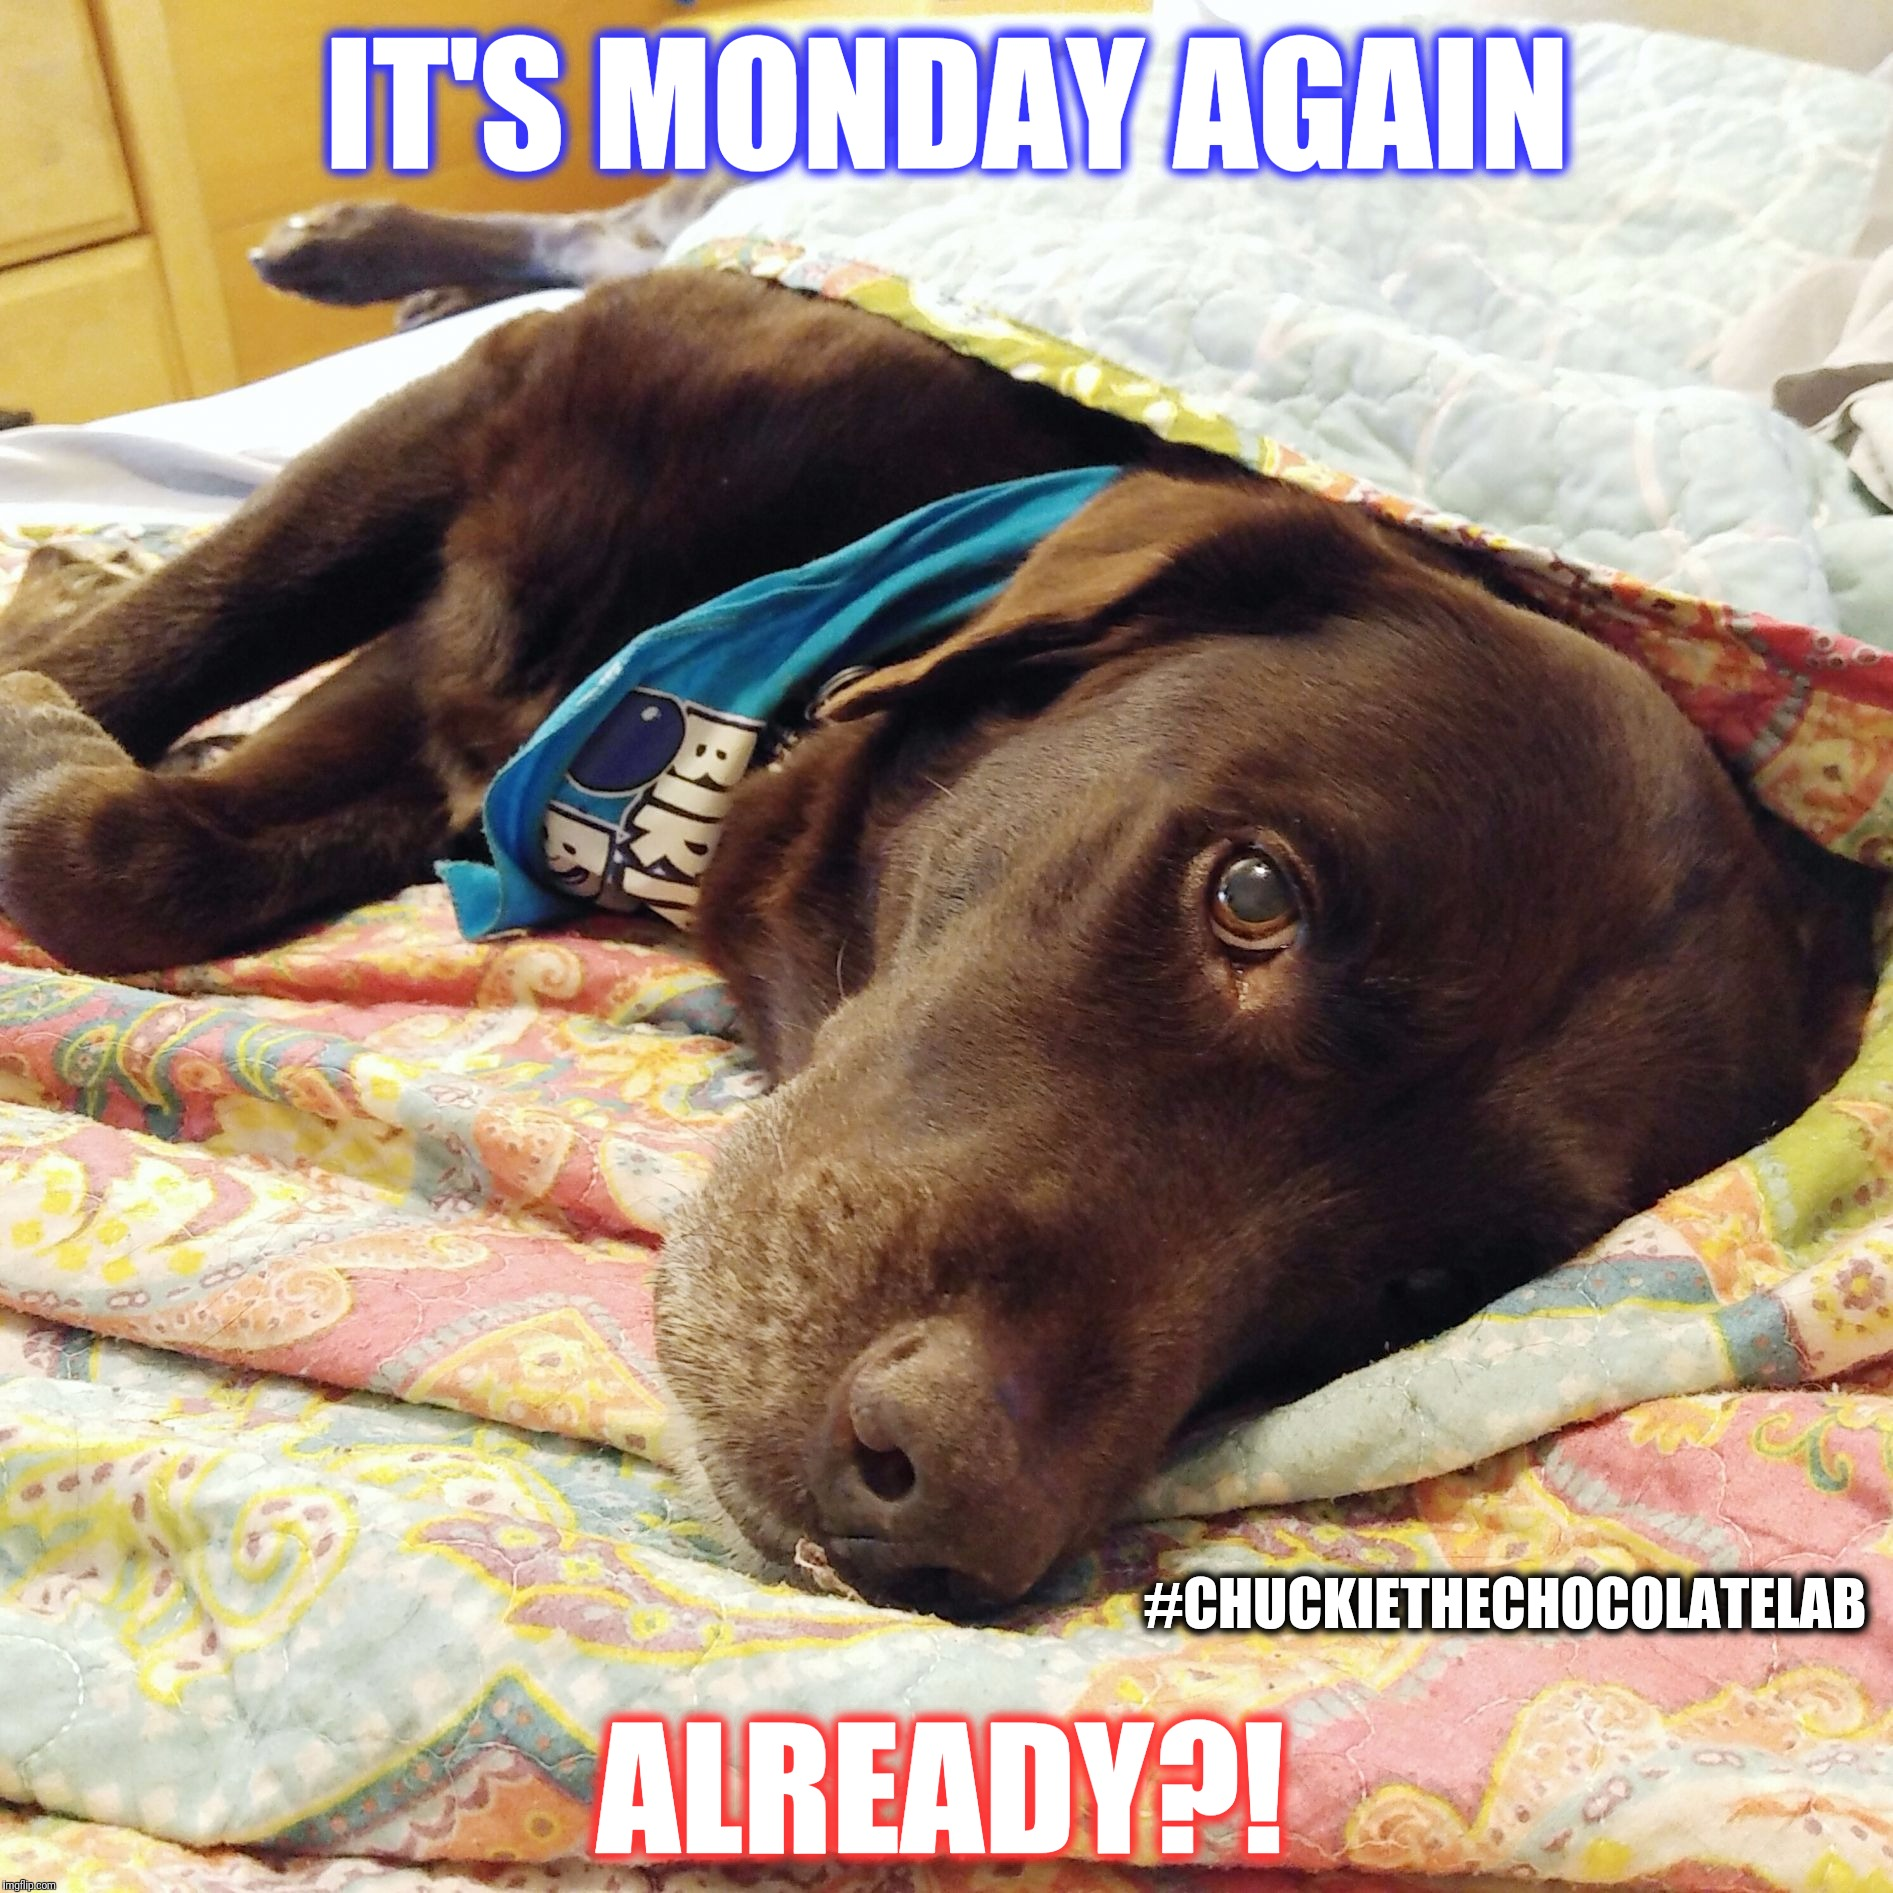 It's Monday again already?  | IT'S MONDAY AGAIN ALREADY?! #CHUCKIETHECHOCOLATELAB | image tagged in chuckie the chocolate lab,monday,case of the mondays,dogs,funny,memes | made w/ Imgflip meme maker